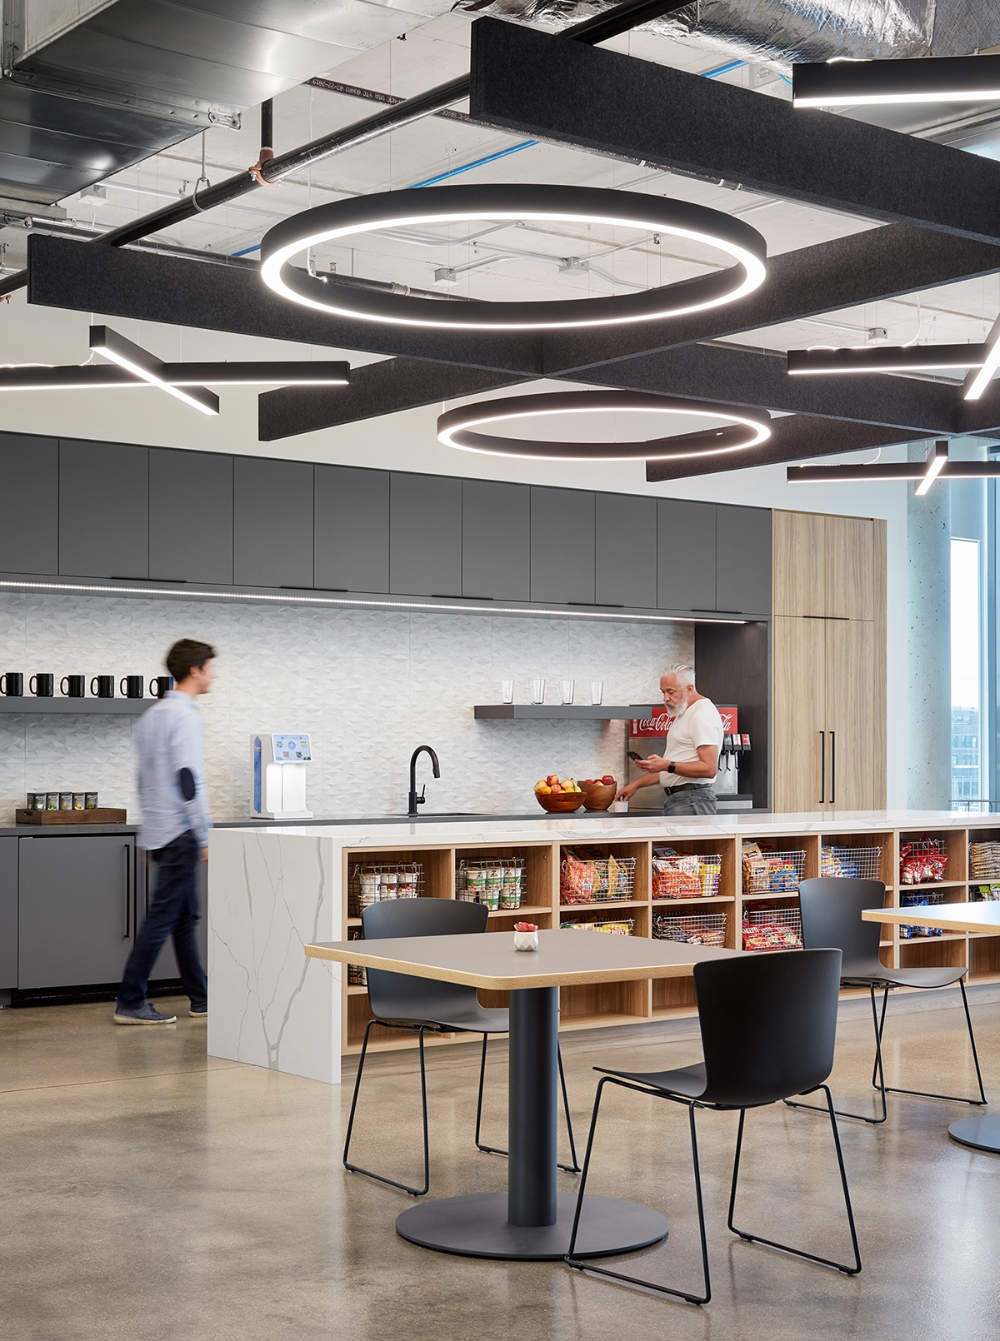 A Look Inside Servicenow S Sleek New Chicago Office Corporate